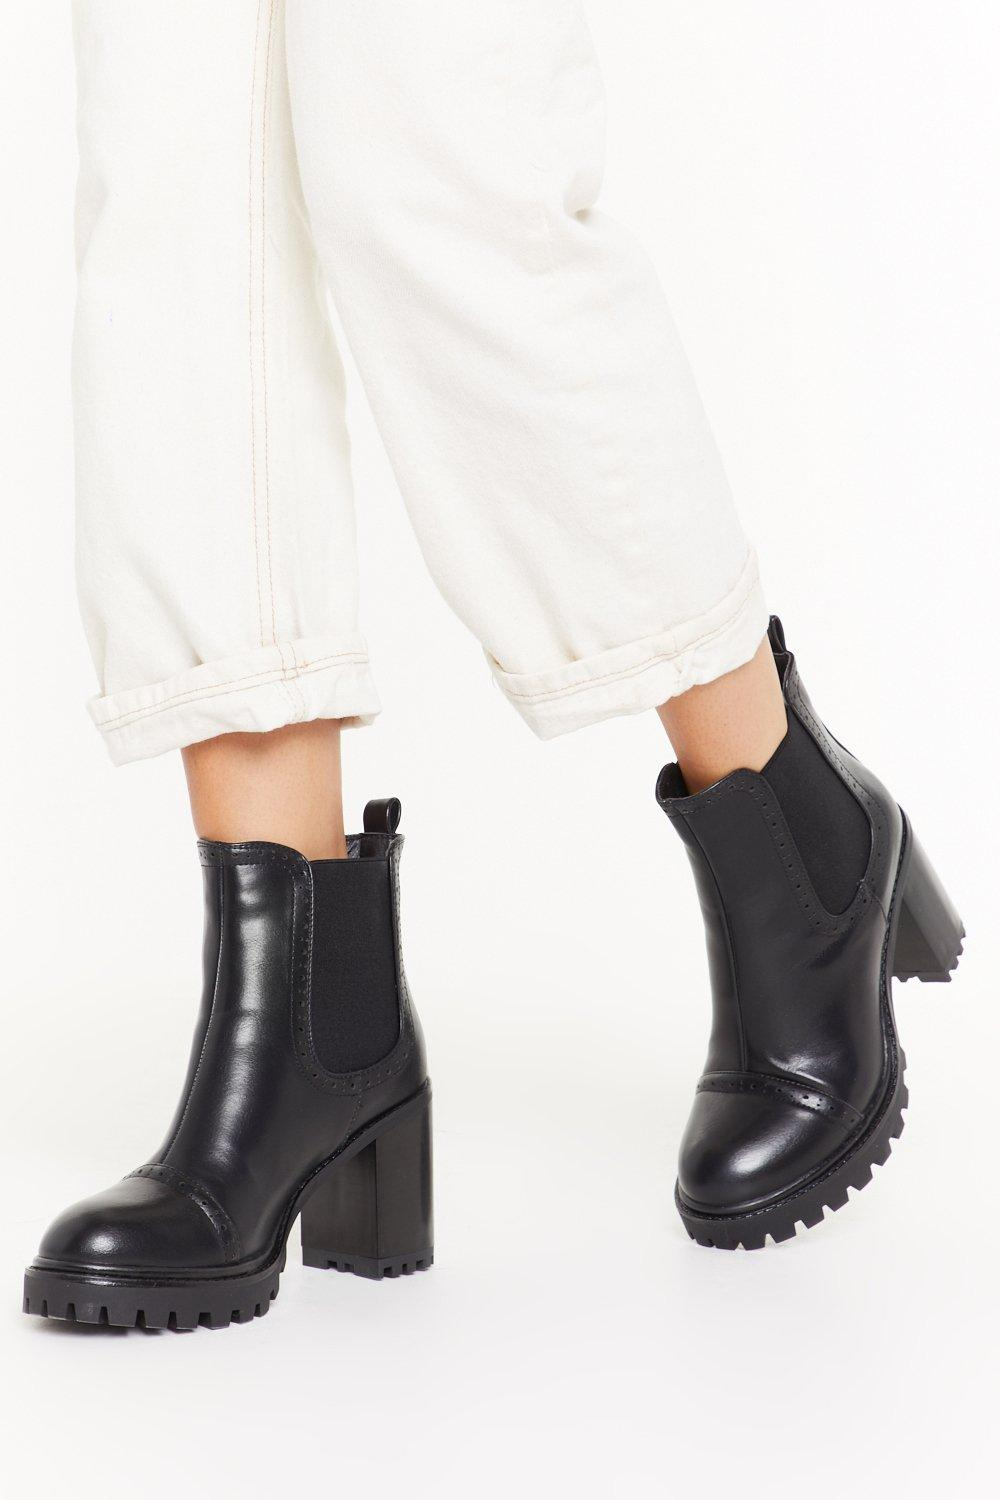 Image of Pace Yourself Faux Leather Cleated Boots